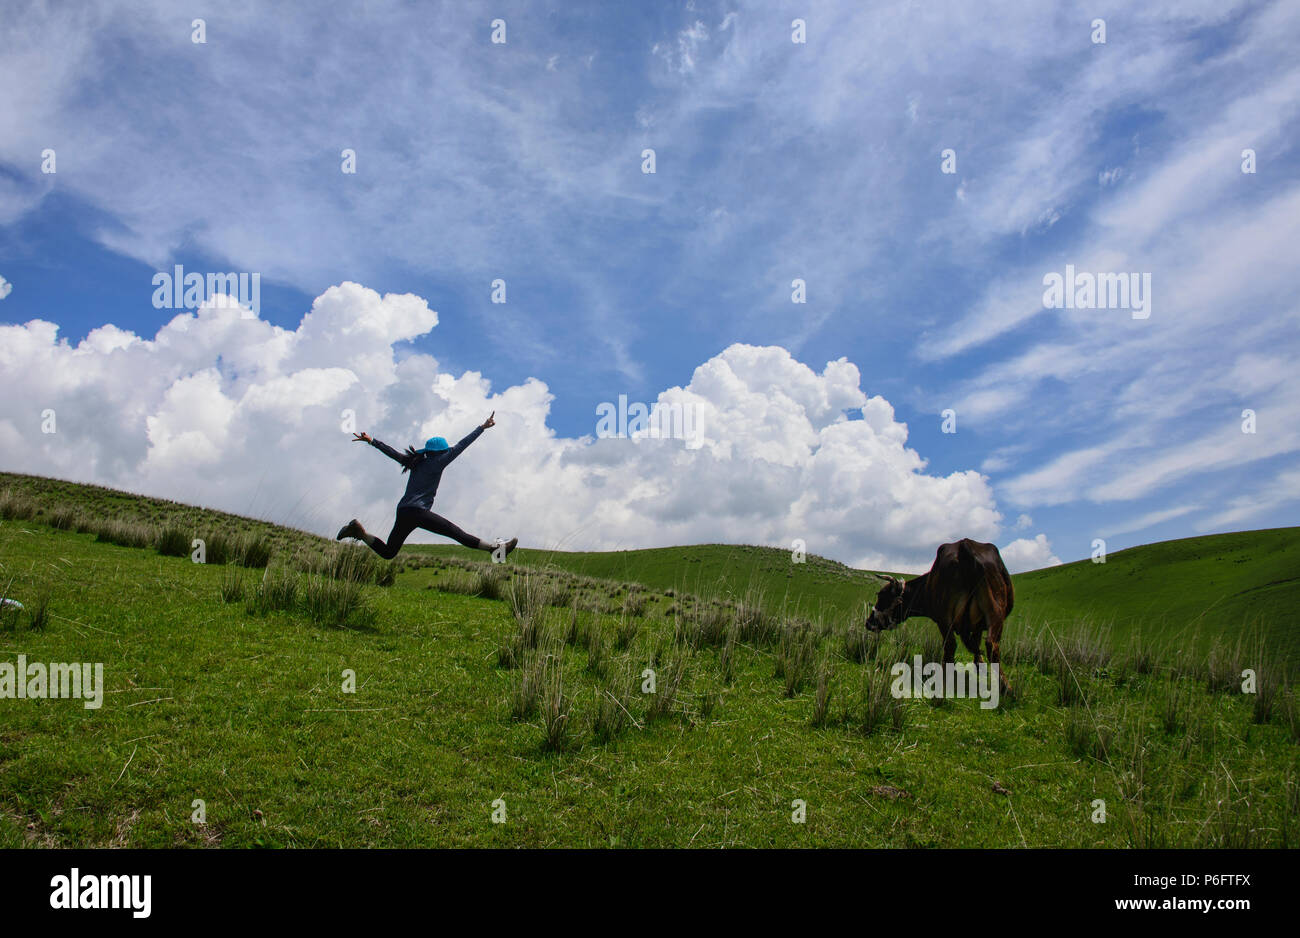 Jumpshot, Nalati, Xinjiang, China - Stock Image